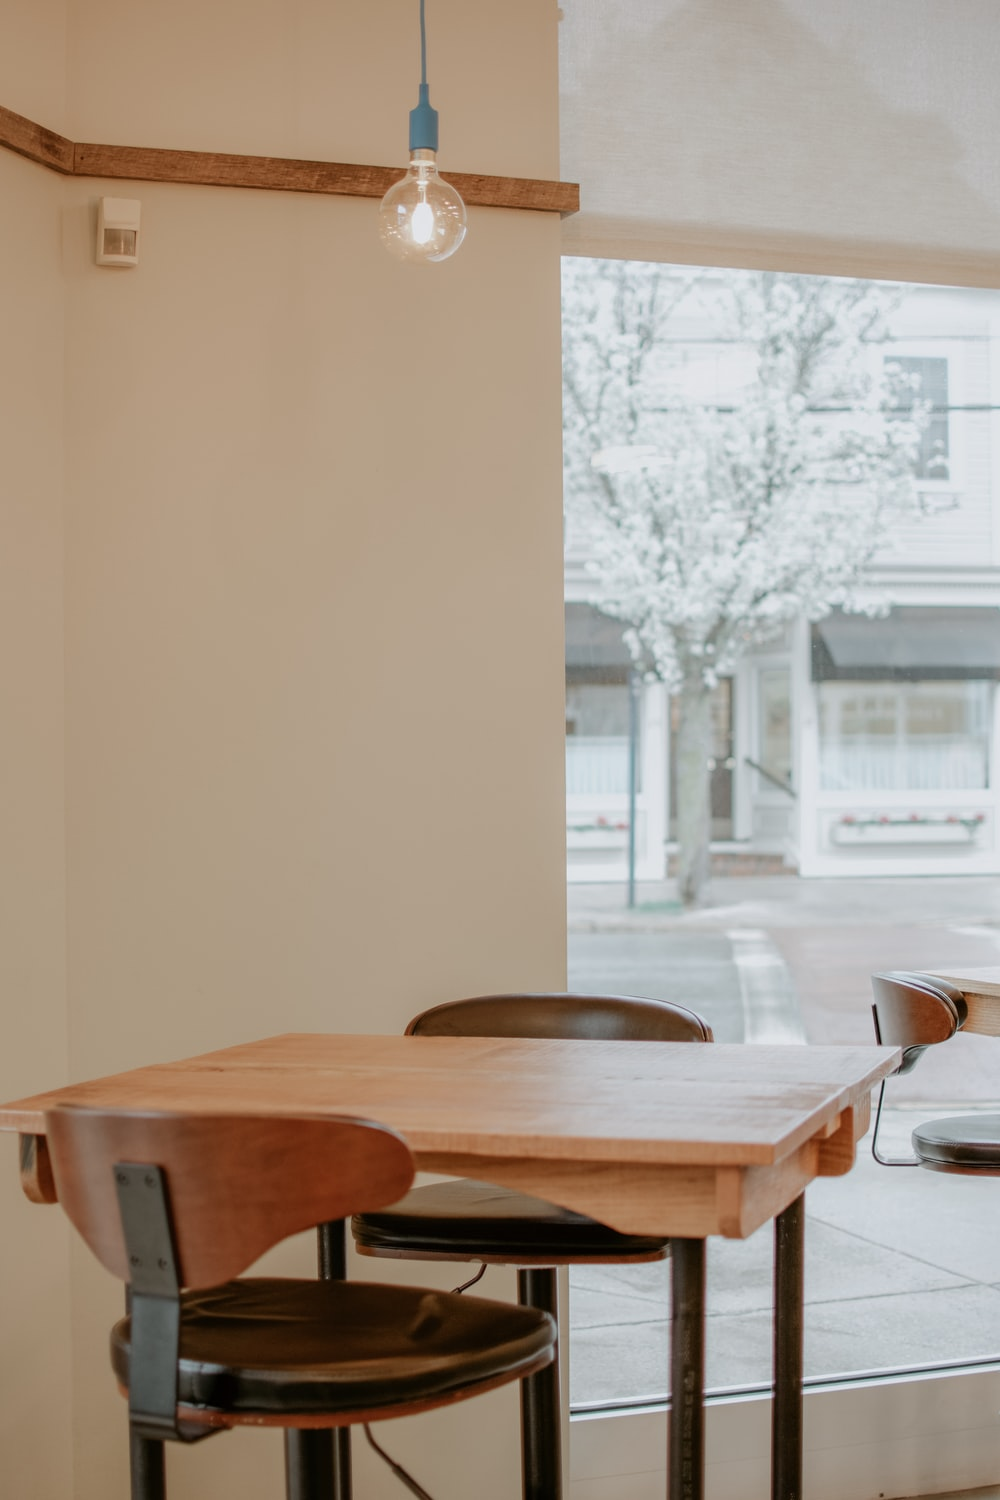 brown wooden table and chairs in room